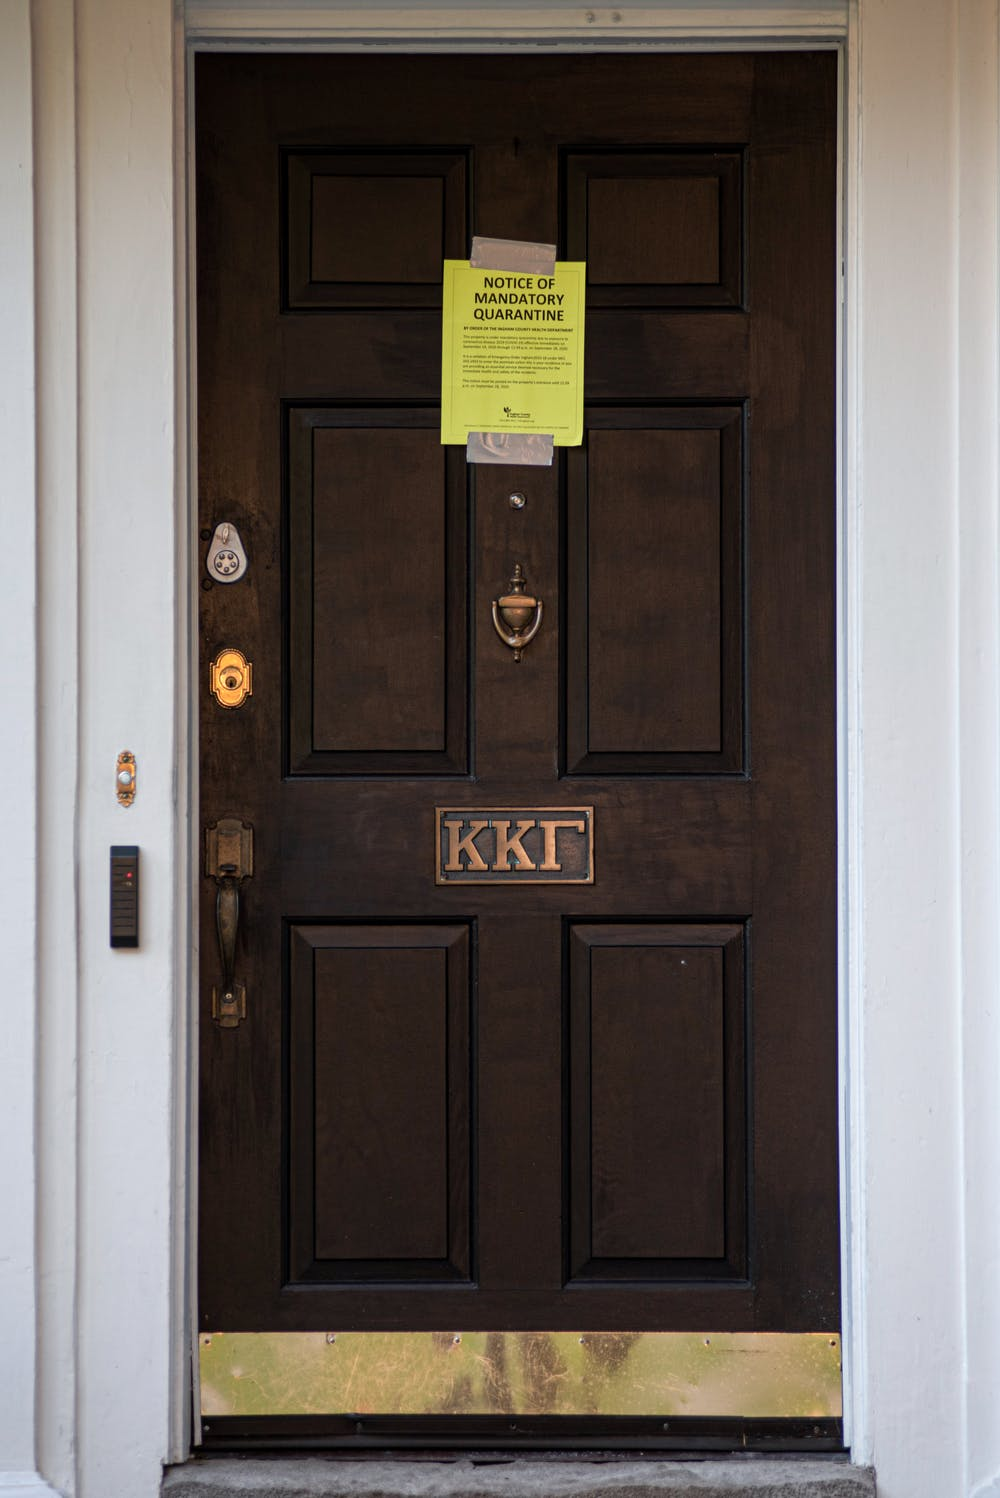 Kappa Kappa Gamma's sorority house has been put under mandated quarantine as of September 17. Houses with required quarantine guidelines are marked with a yellow paper on the front door. Shot on September 17, 2020.